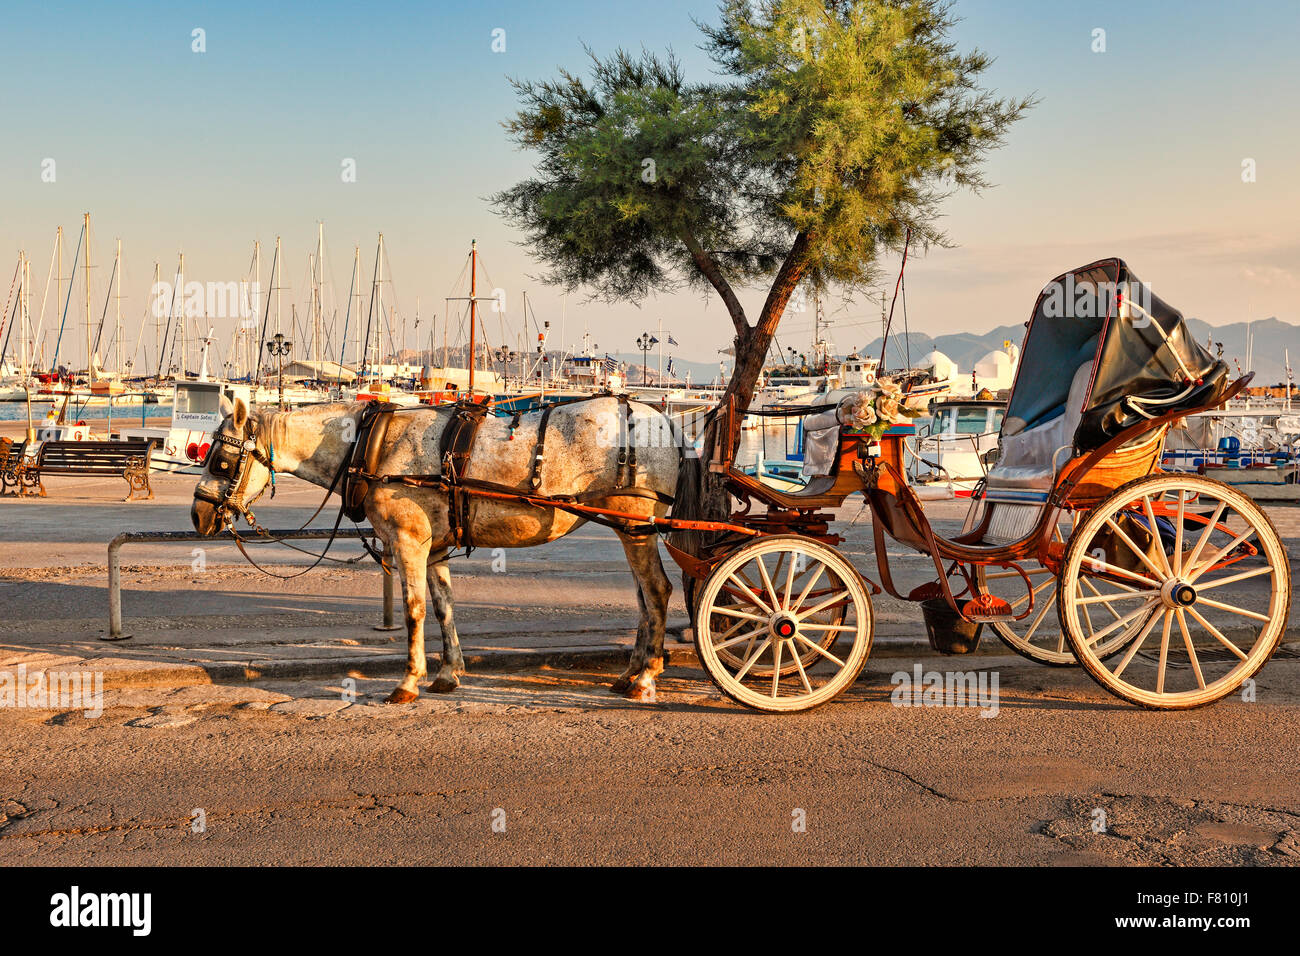 A horse drawn carriage in the port of Aegina island, Greece - Stock Image